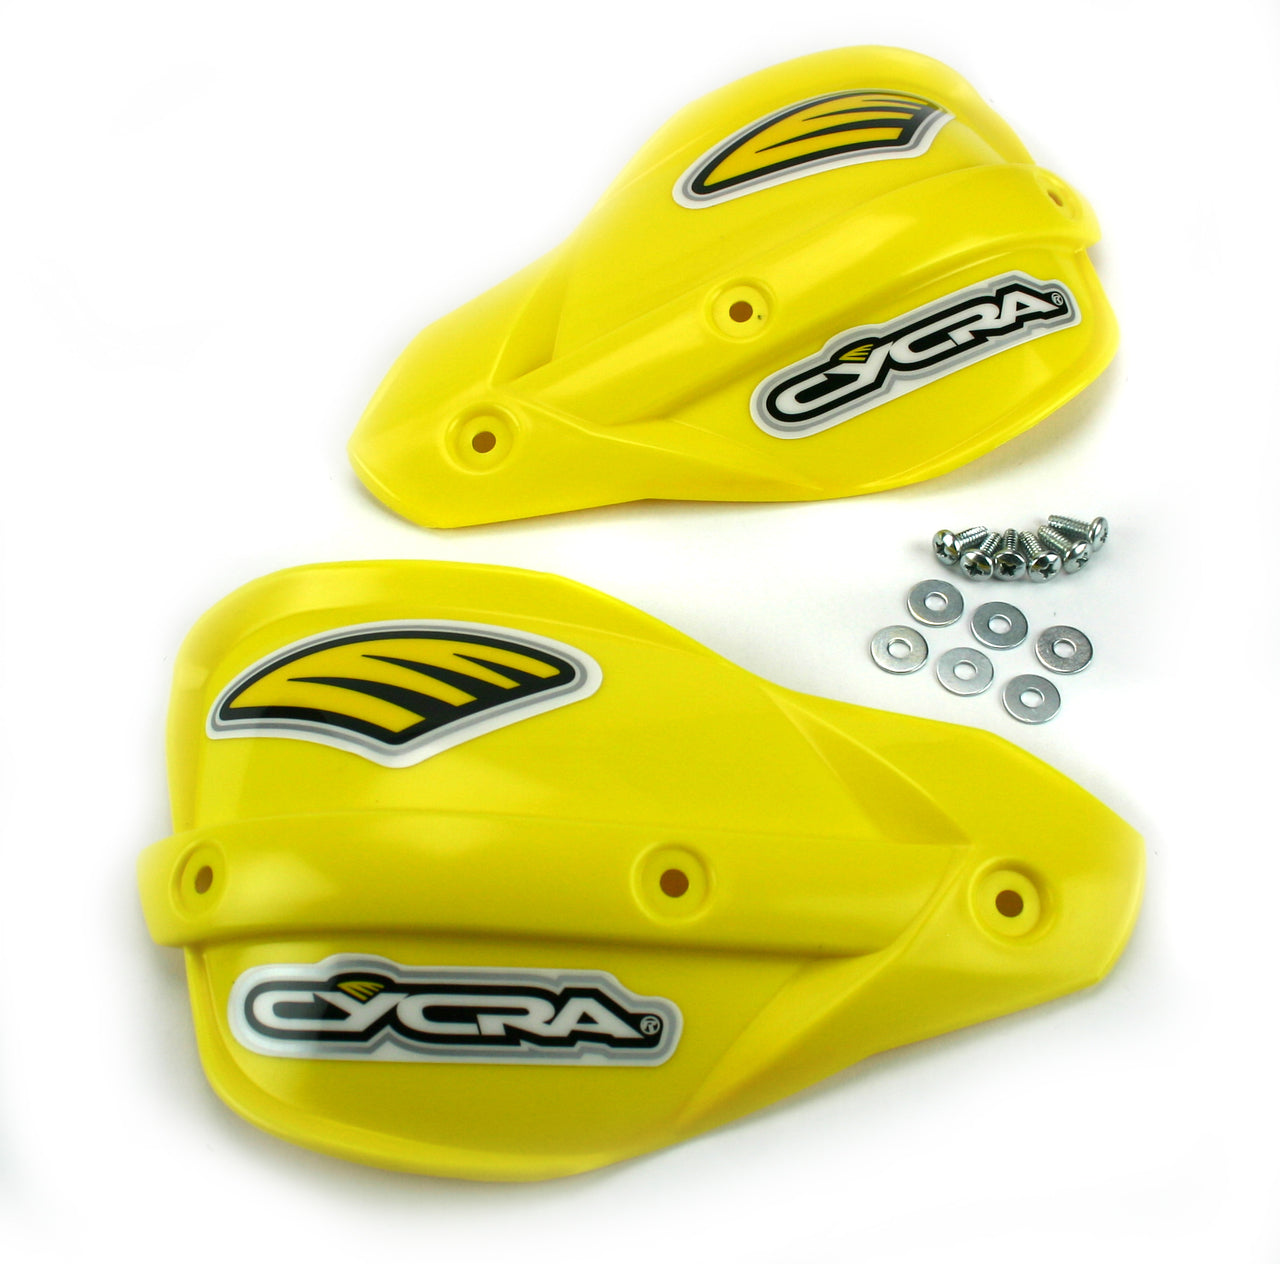 Cycra - Enduro Replacement Handshields